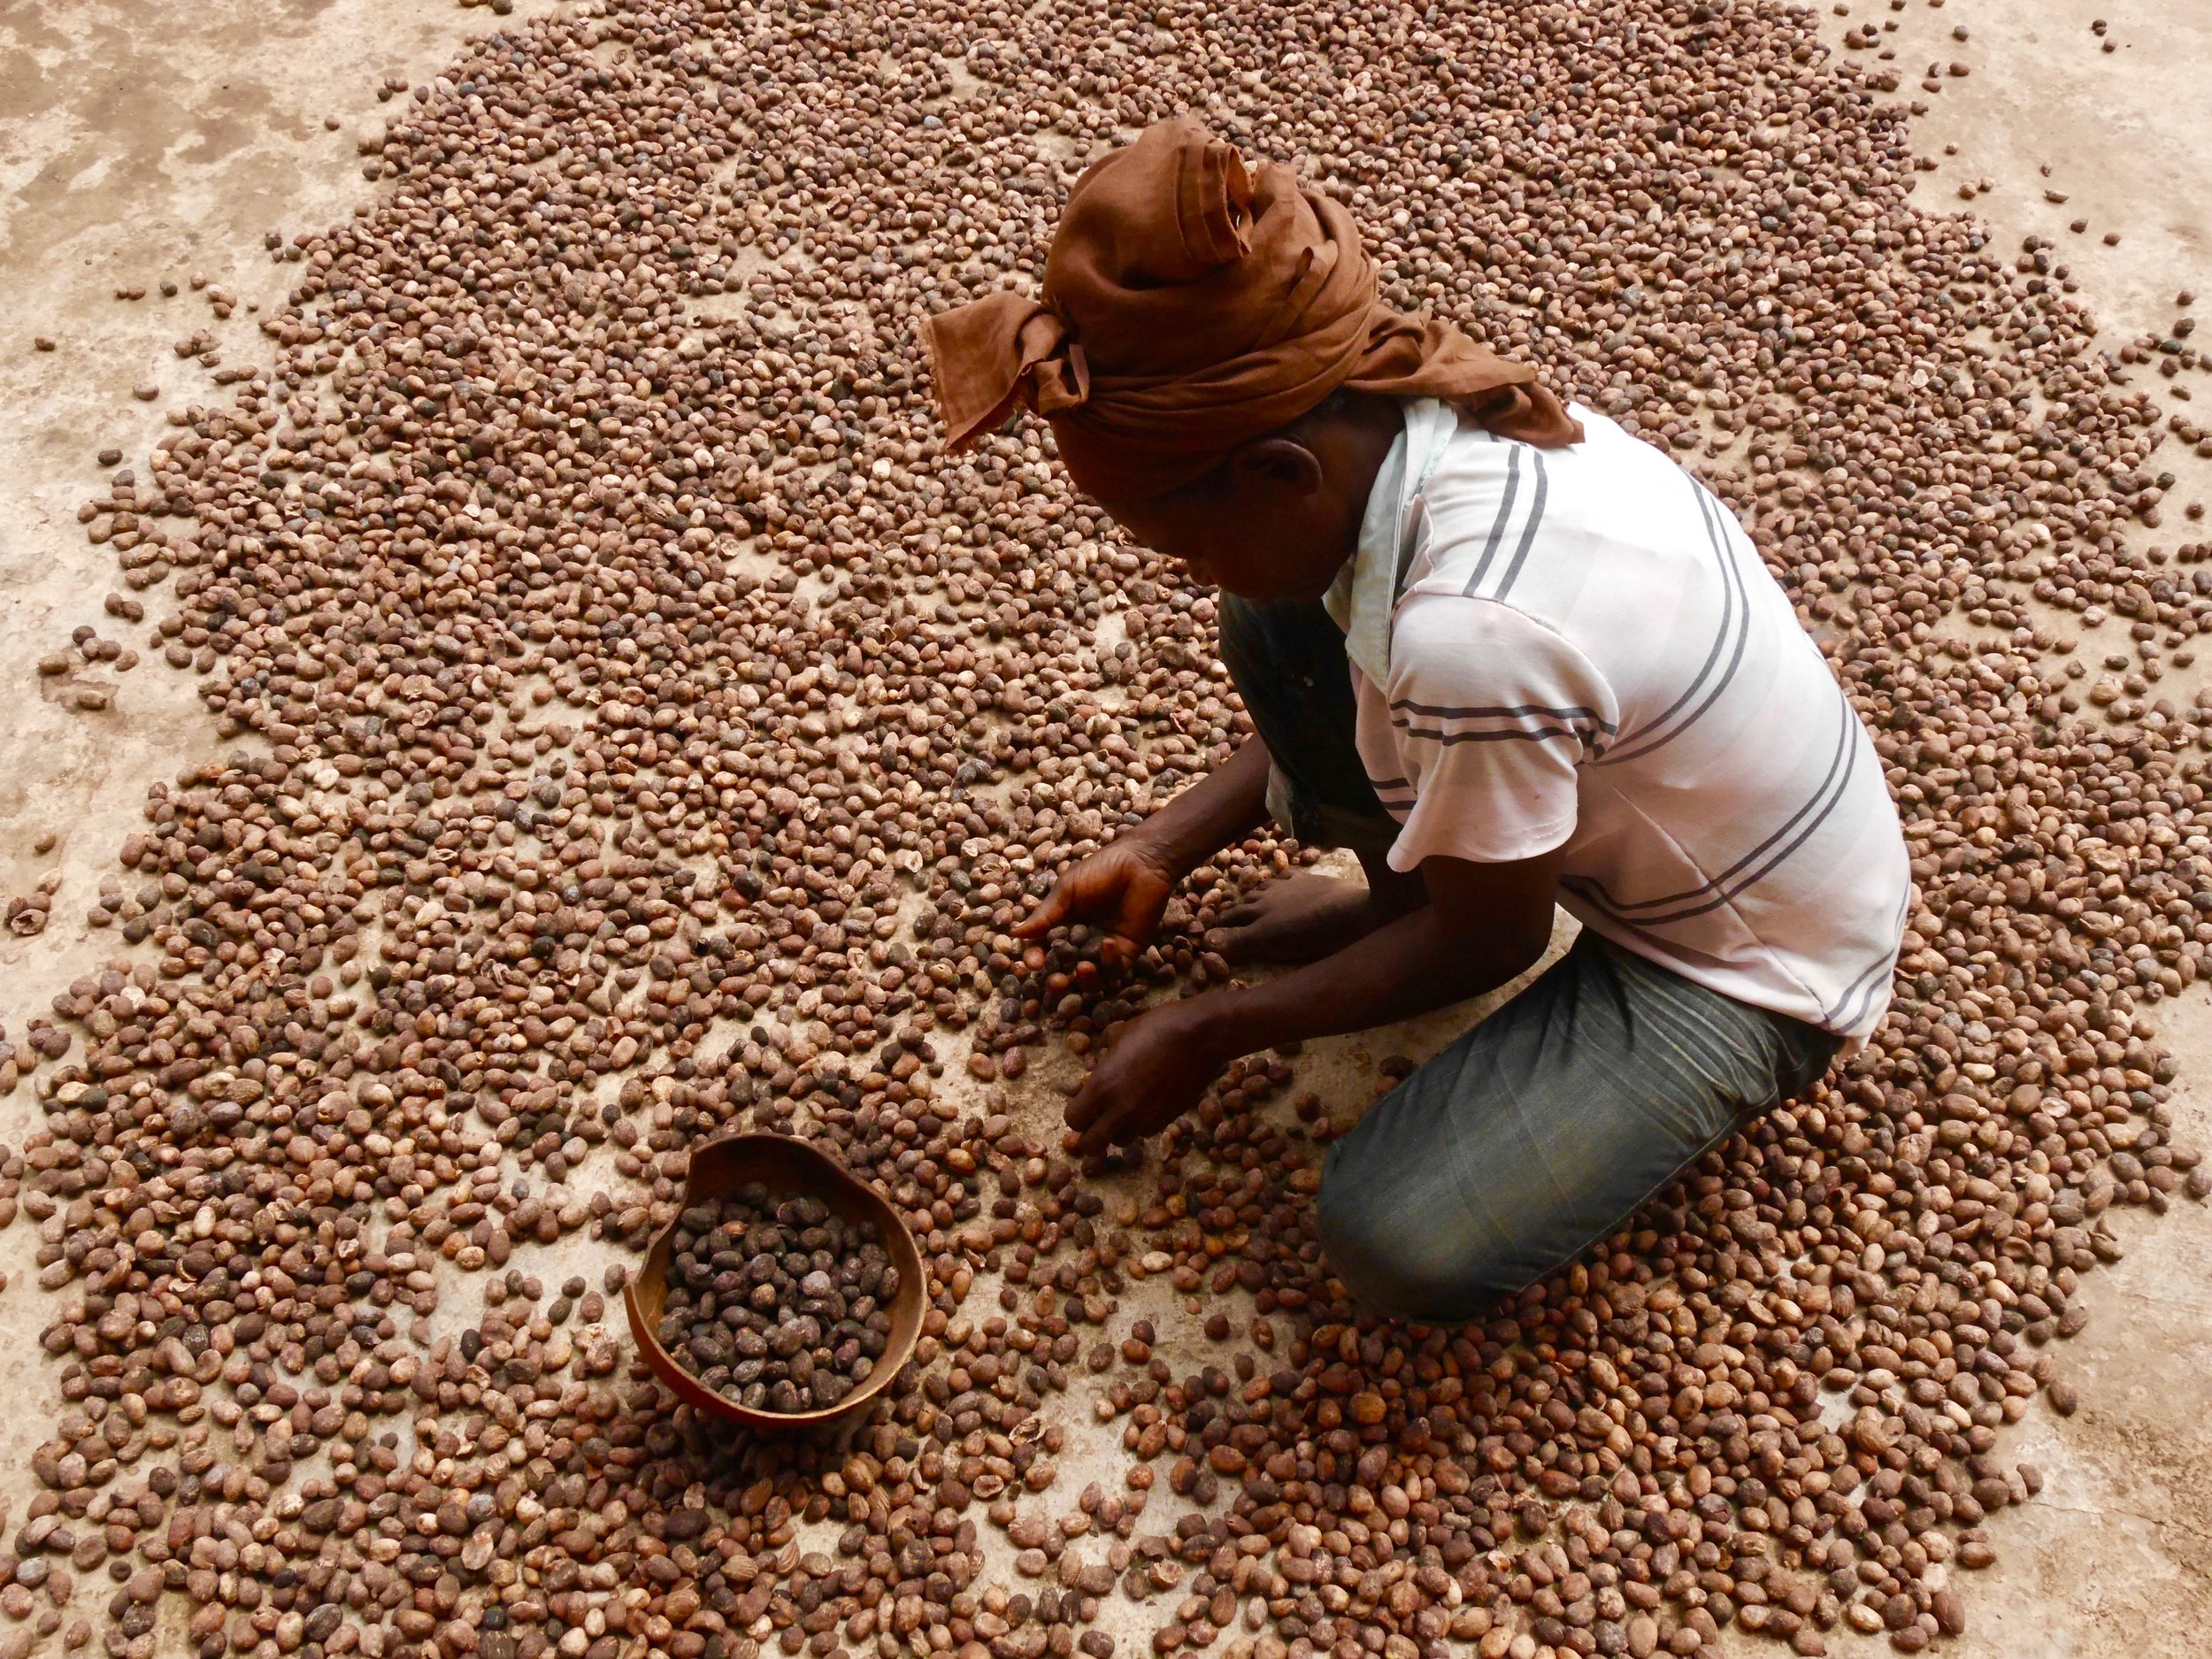 Before you can start the shea preparation the bad nuts need to be carefully picked out of the batch.